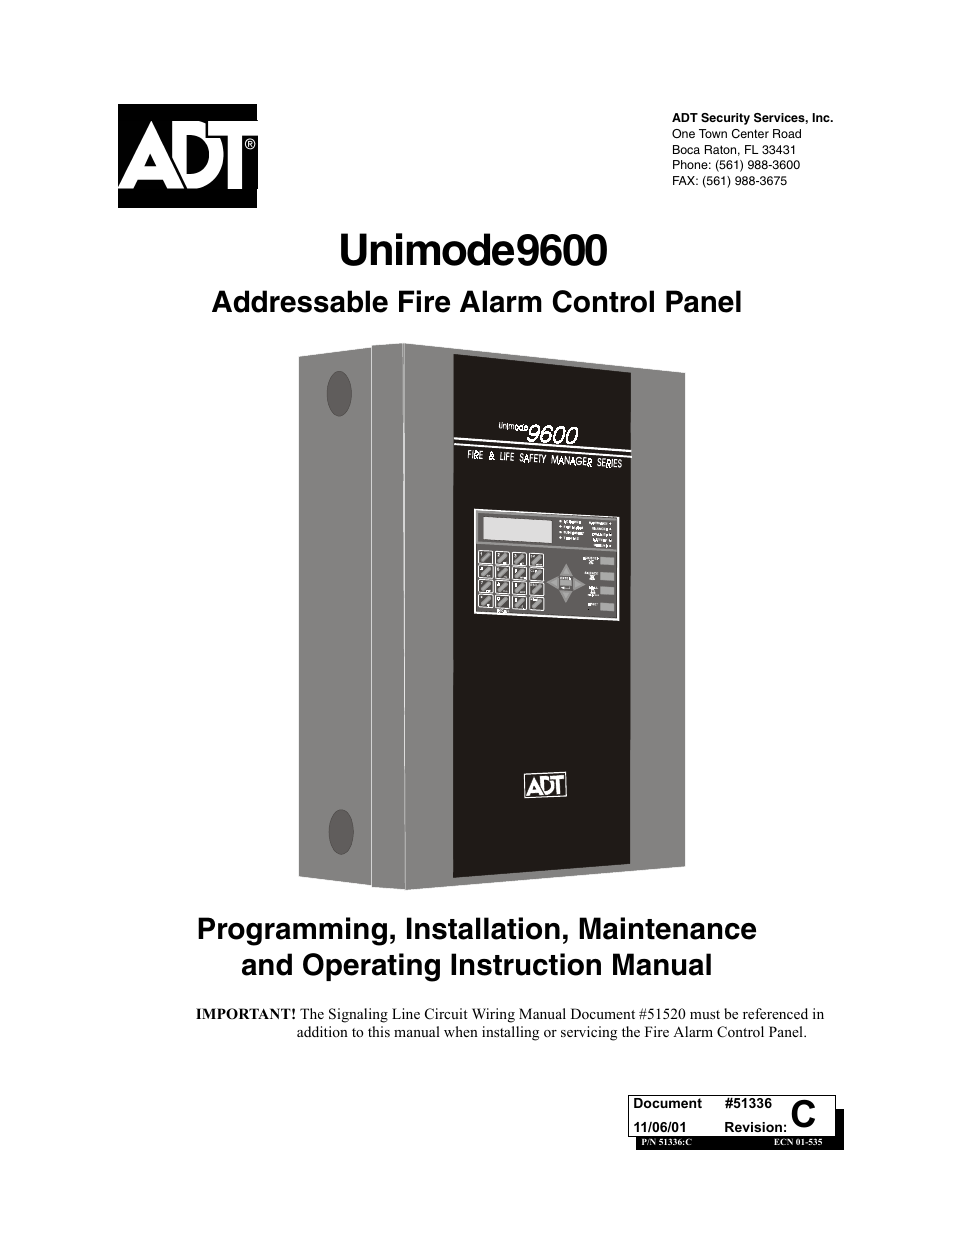 adt security services unimode 9600 user manual 148 pages. Black Bedroom Furniture Sets. Home Design Ideas